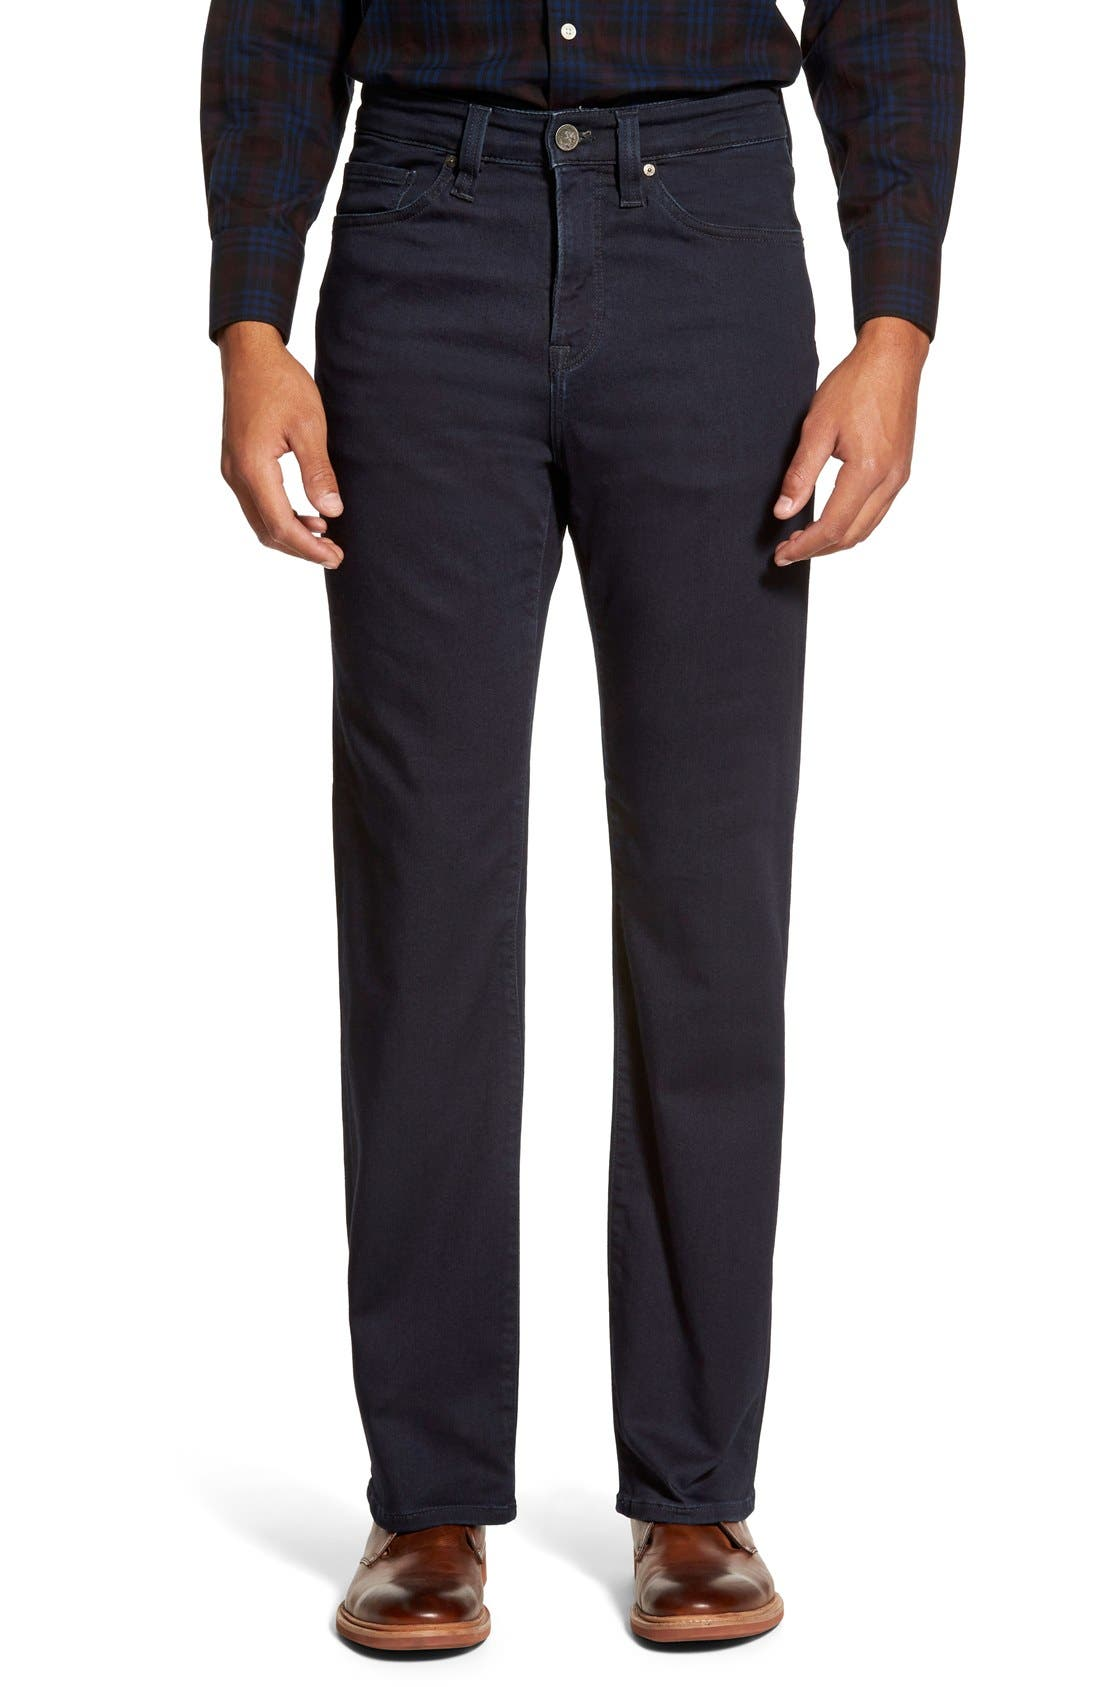 'Charisma' Relaxed Fit Jeans,                             Main thumbnail 1, color,                             RINSE SPORTY